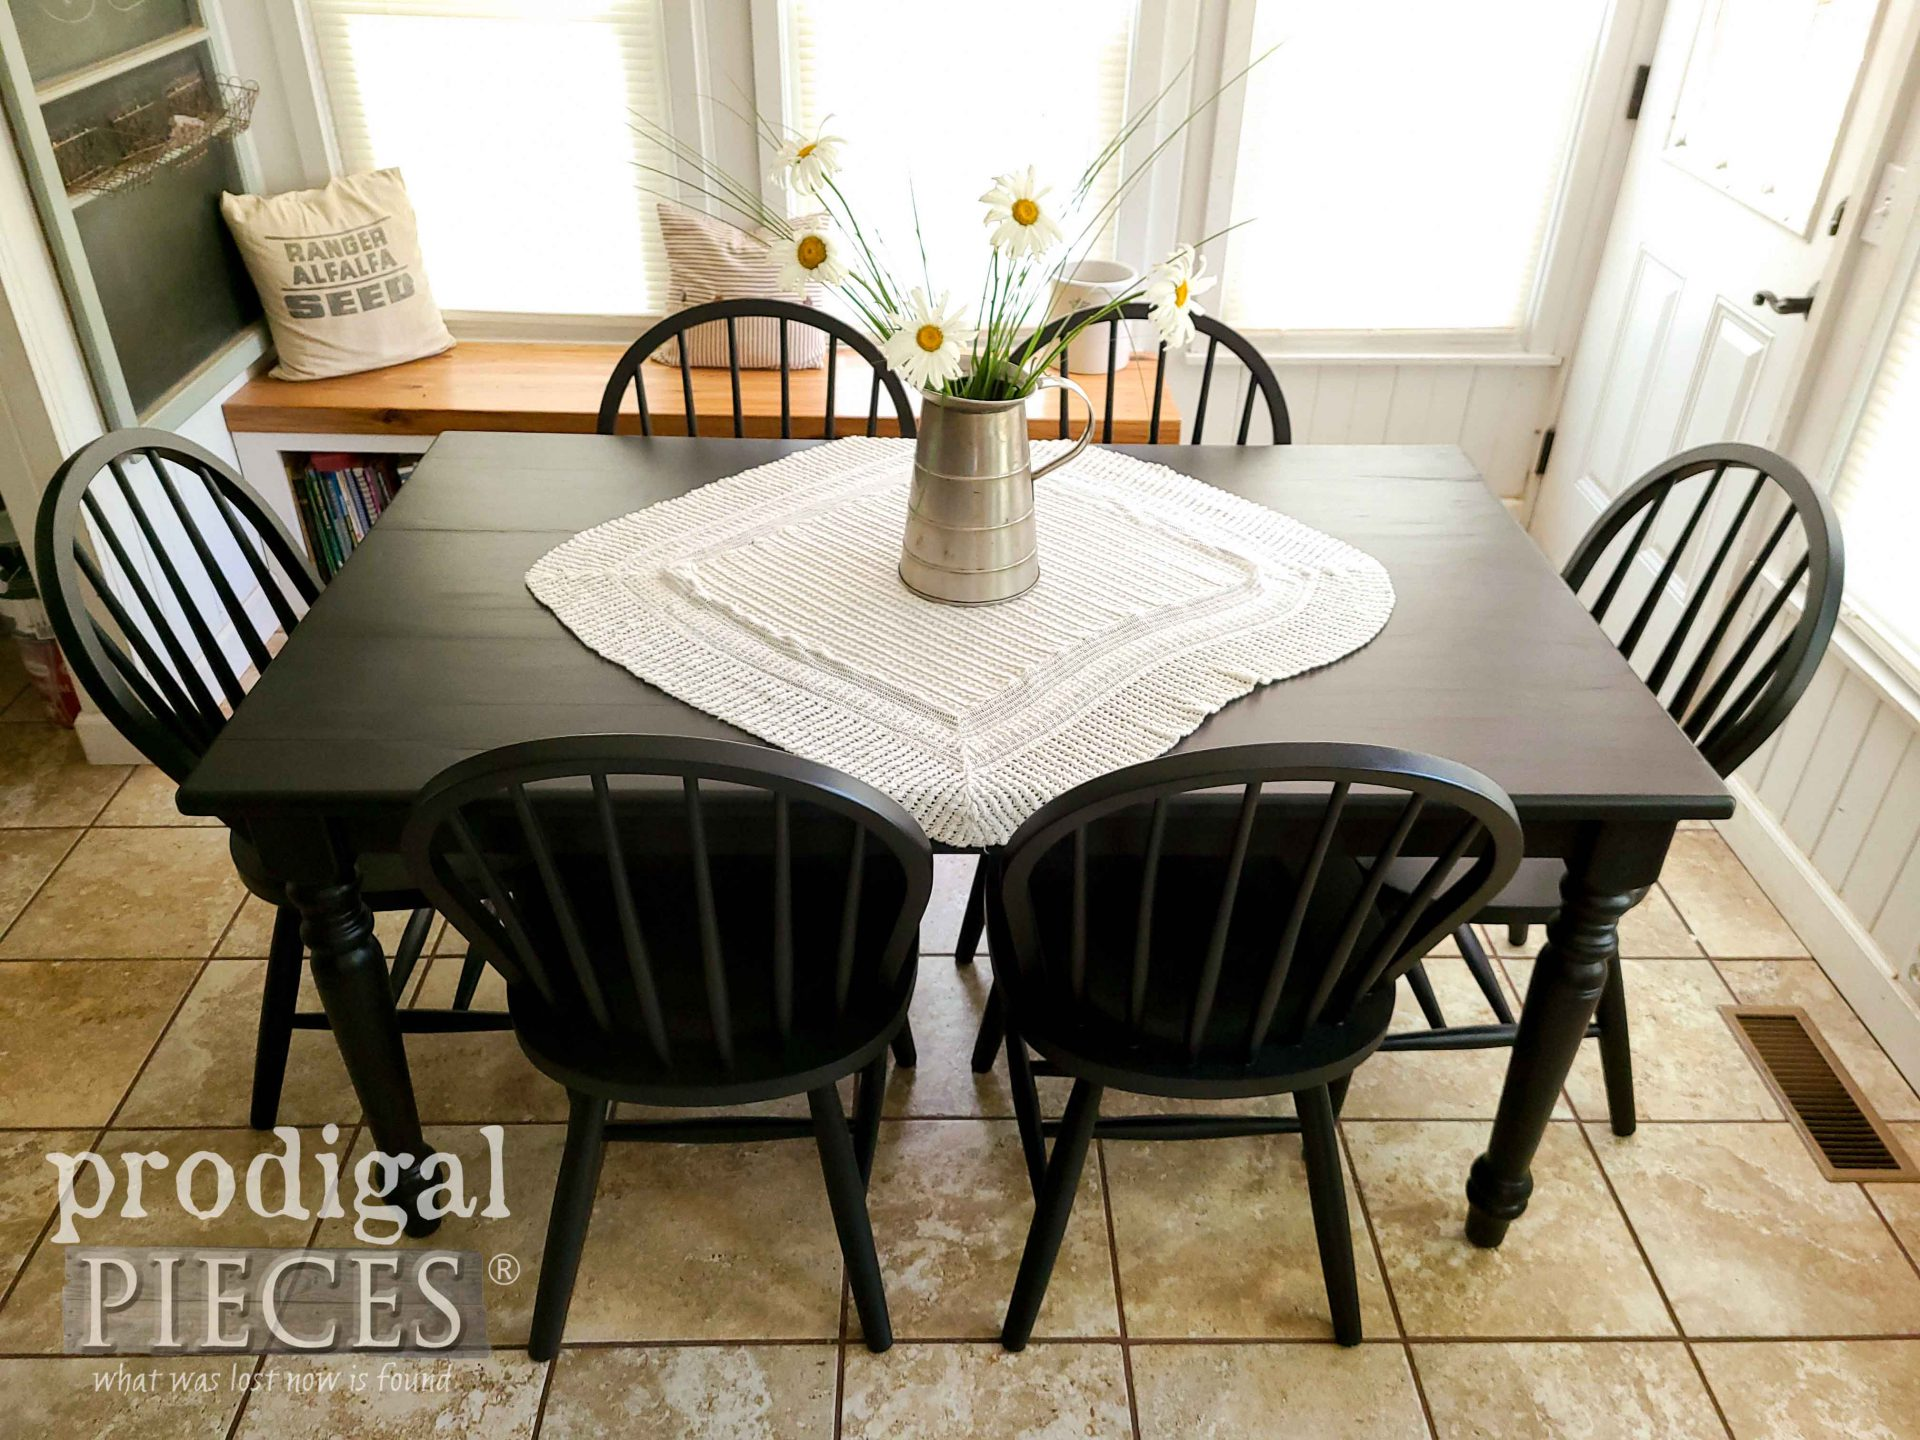 Black Farmhouse Dining Table with Windsor Chairs by Larissa of Prodigal Pieces | prodigalpieces.com #prodigalpieces #dining #farmhouse #home #homedecor #farmhouse